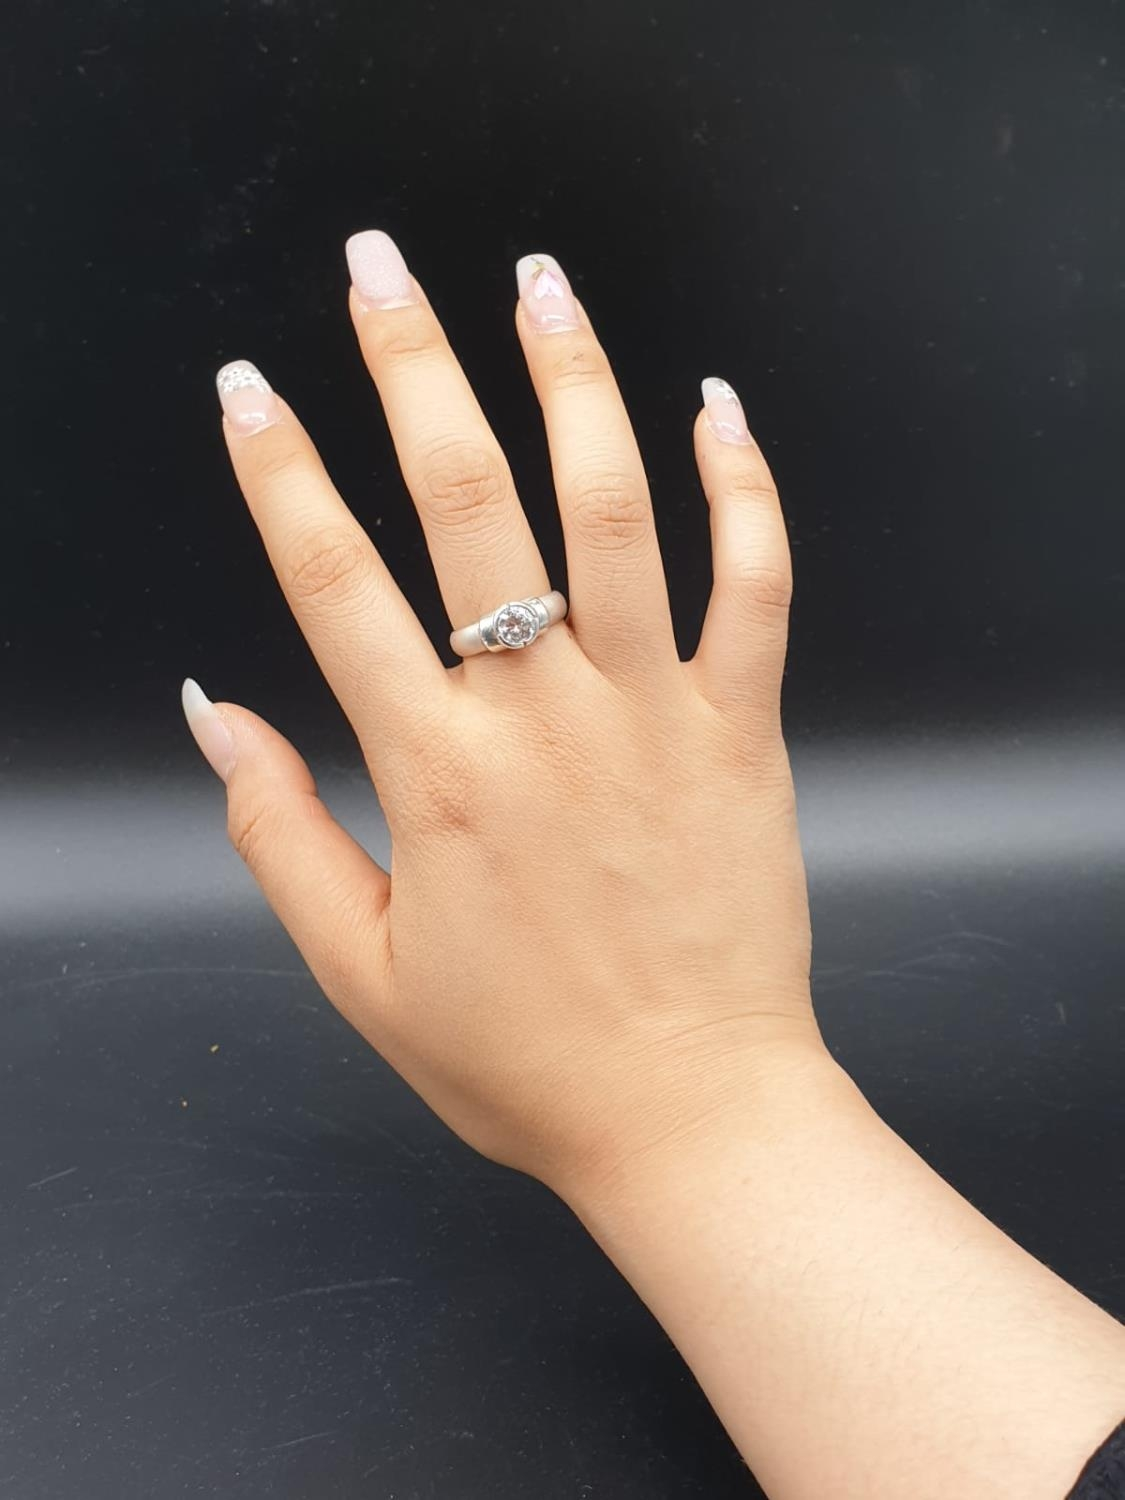 Silver Ring with large CZ Stone 3.6g Size P - Image 6 of 7